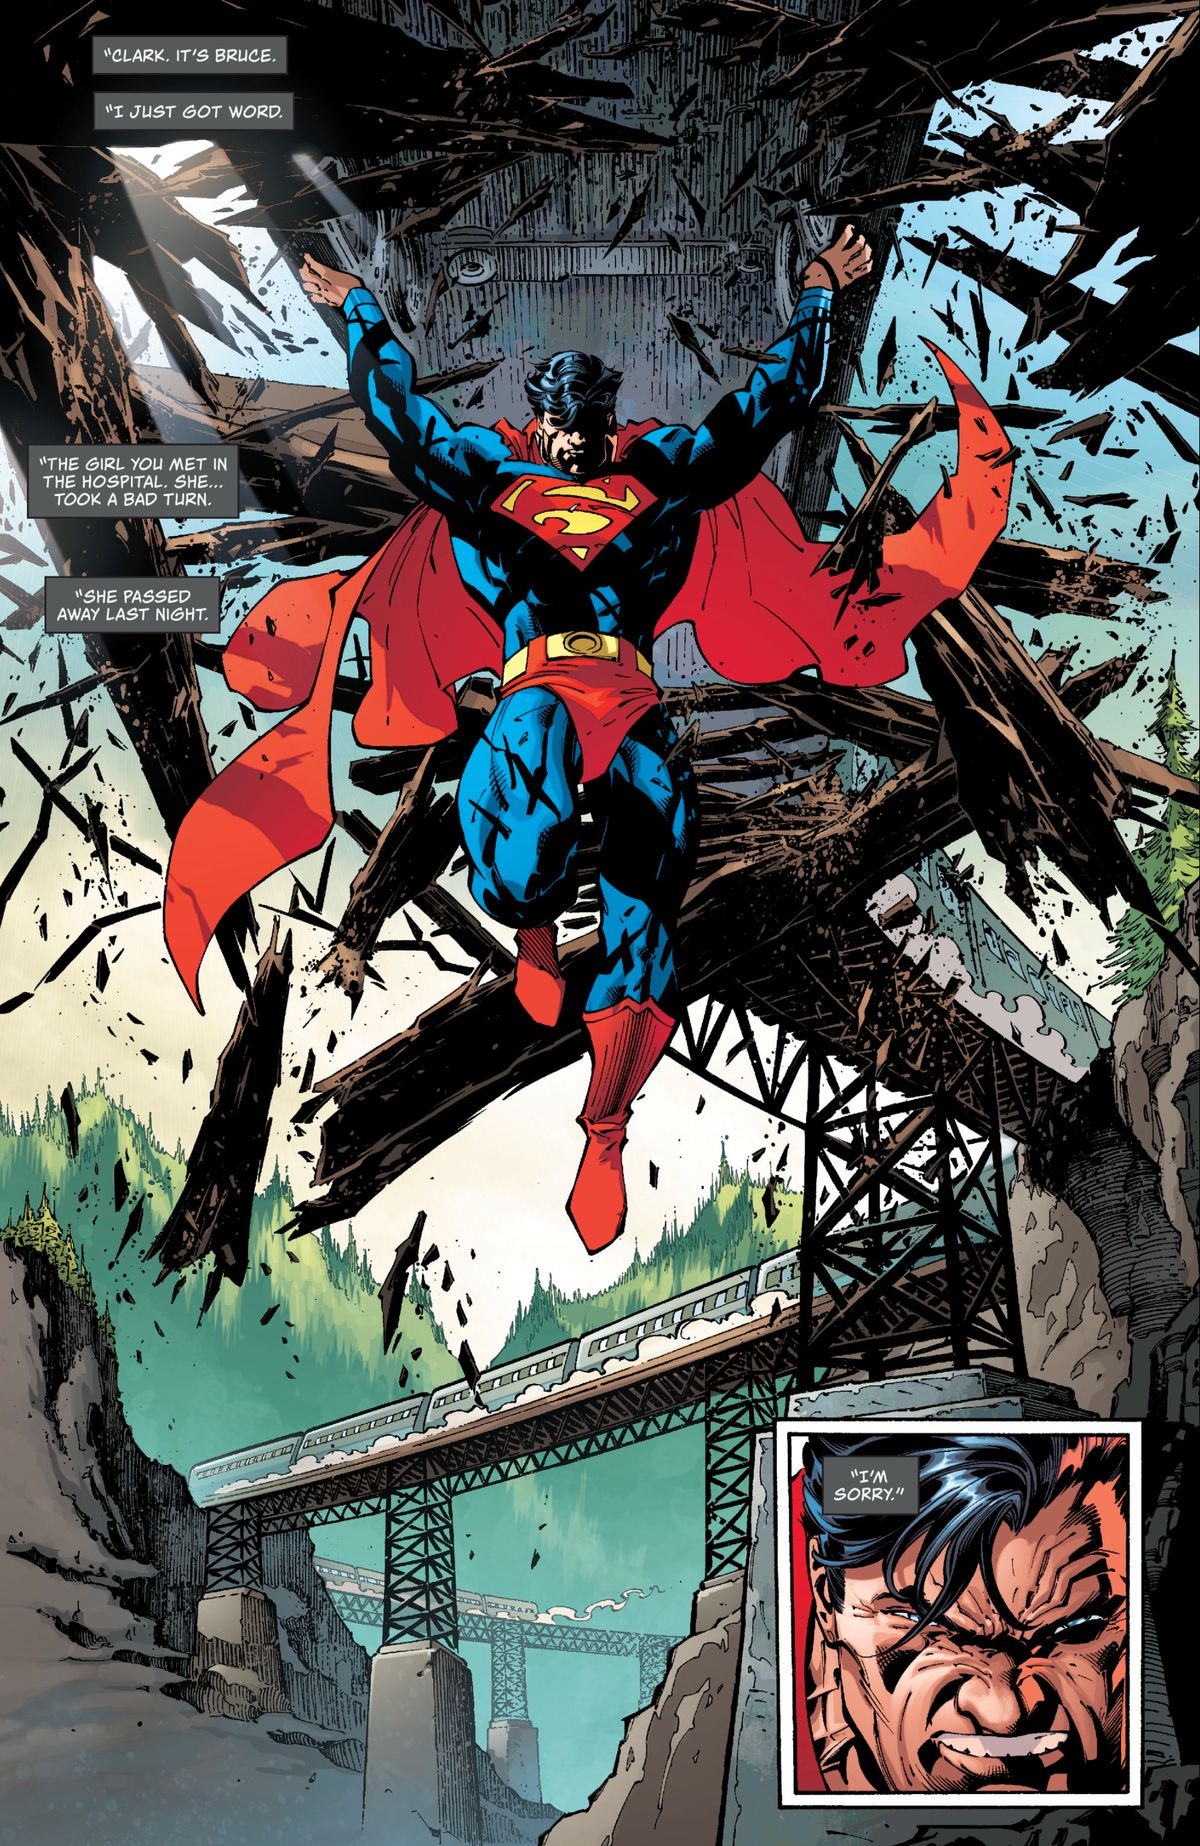 Superman in Superman: Up in the Sky #1, DC Comics (2019).